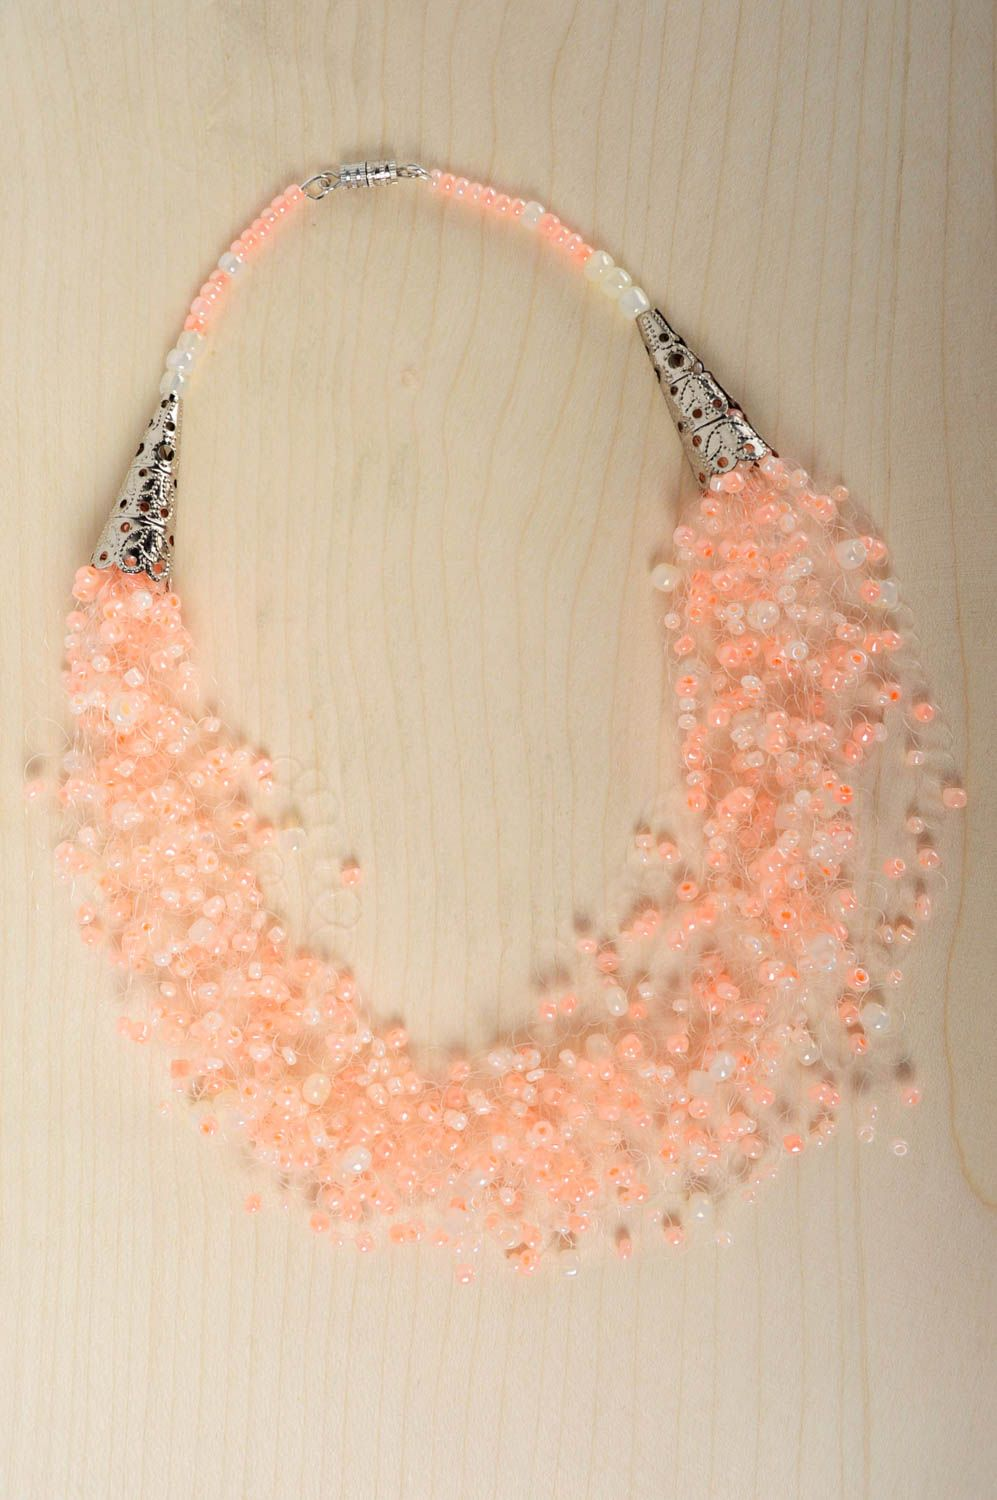 Homemade beaded necklace photo 5